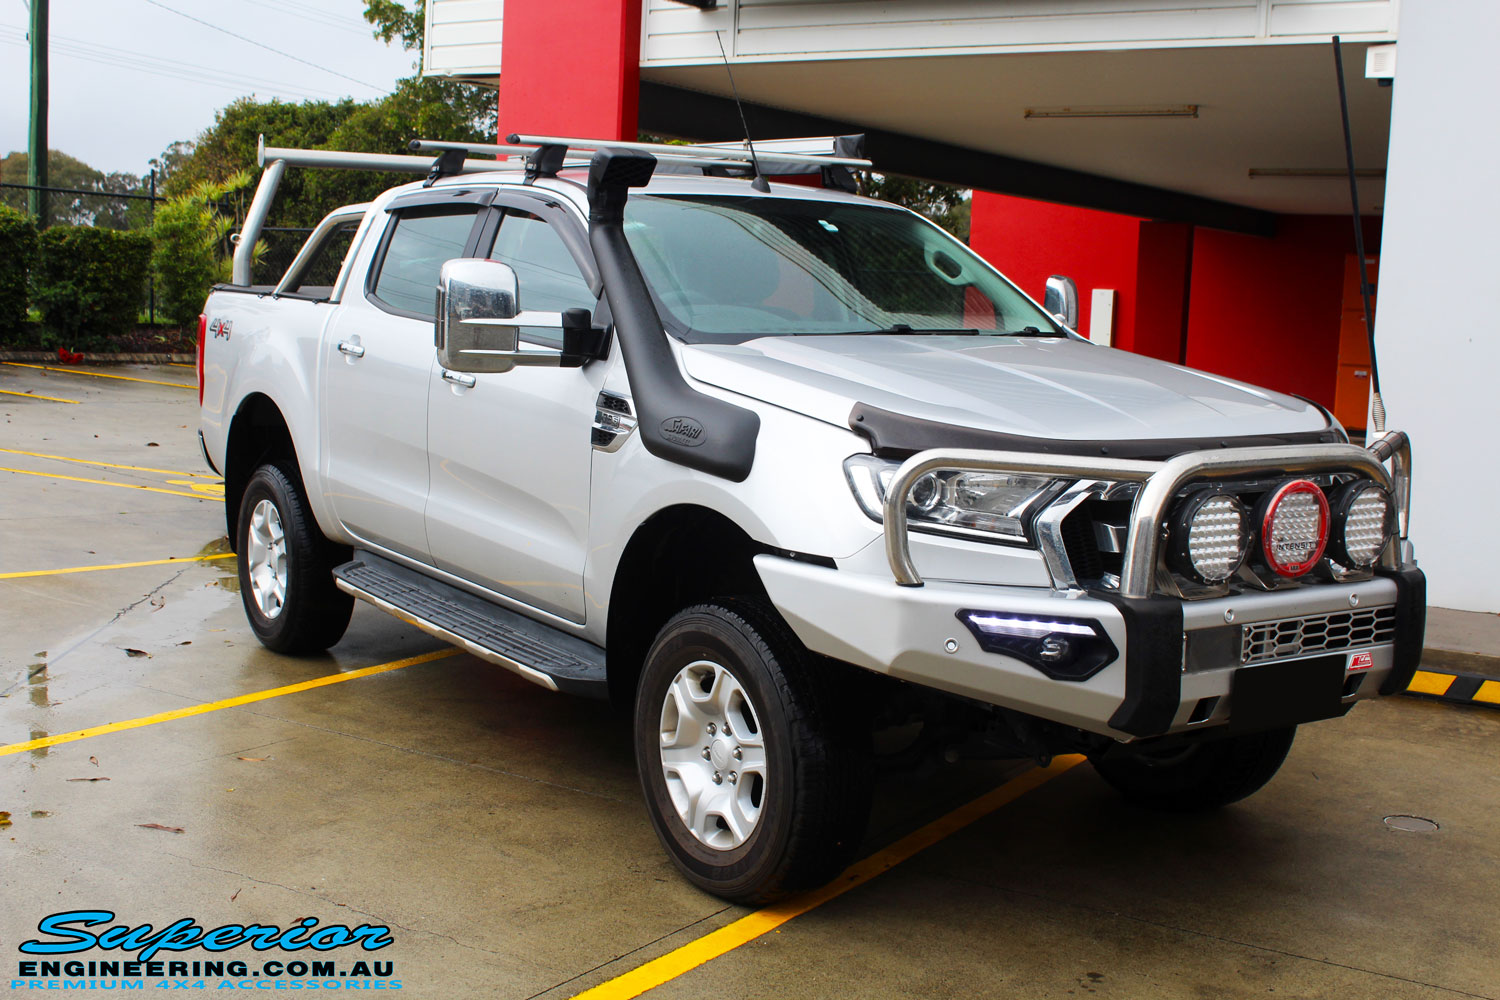 Right front side view of a Ford PXII Ranger in Silver On The Hoist @ Superior Engineering Deception Bay Showroom